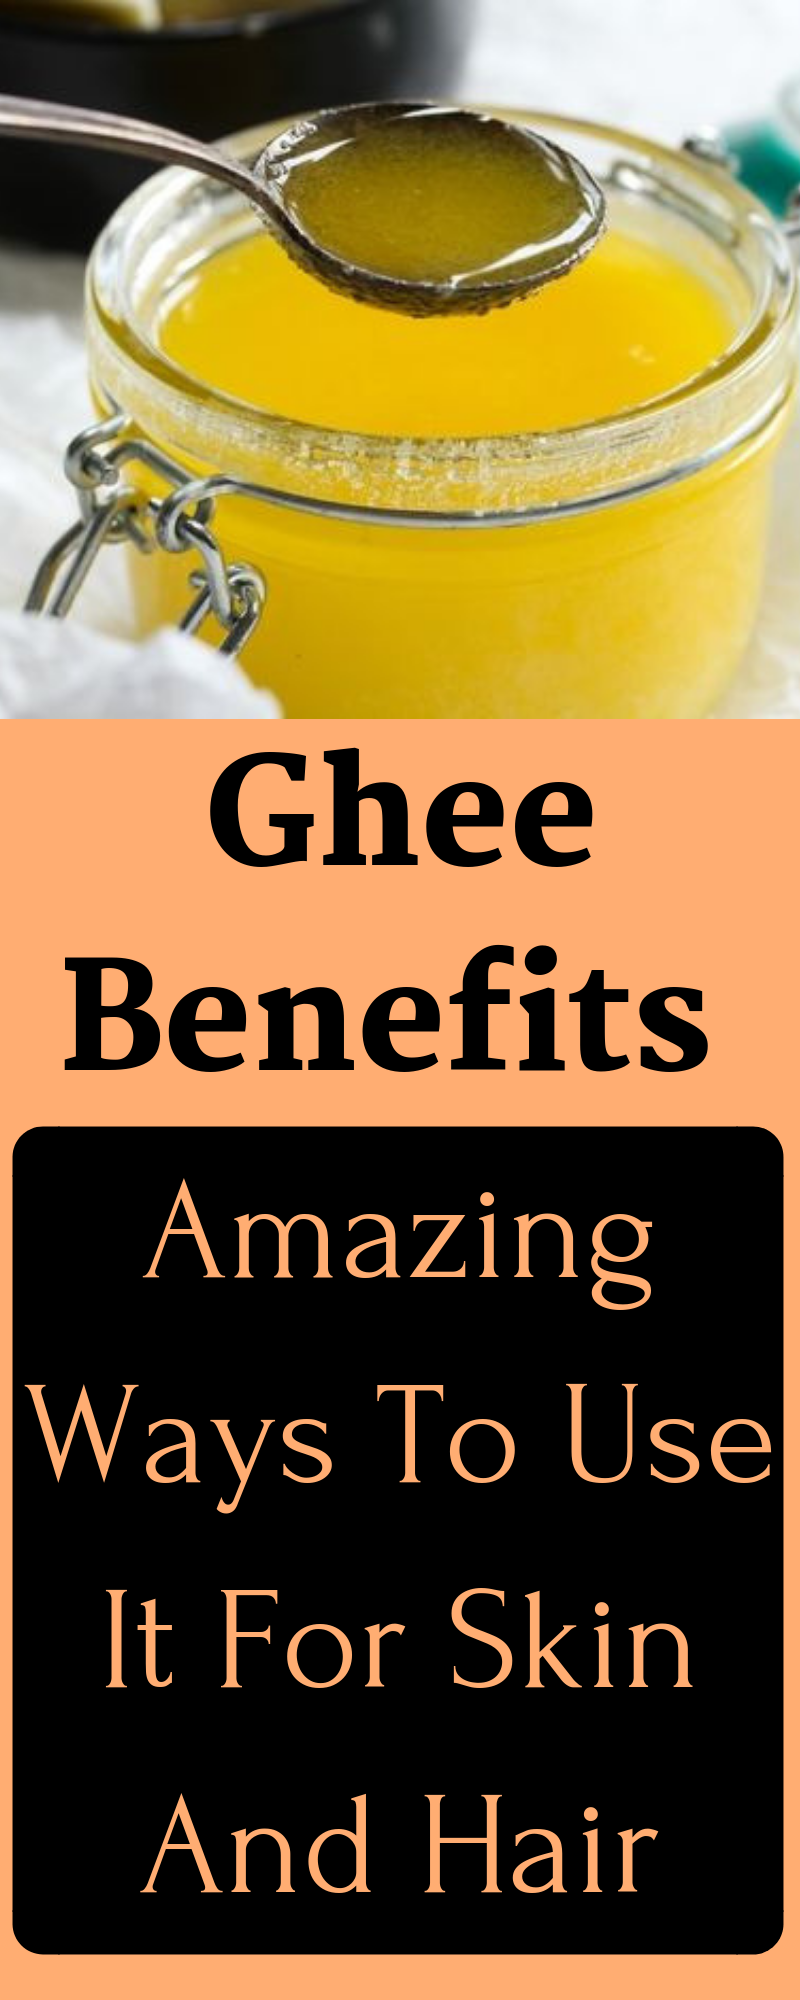 Ghee Benefits Amazing Ways To Use It For Skin And Hair Skin Skincare Haircare Diyhair Beauty Beautytips Beautycar Ghee Benefits Ghee Skin Care Secrets